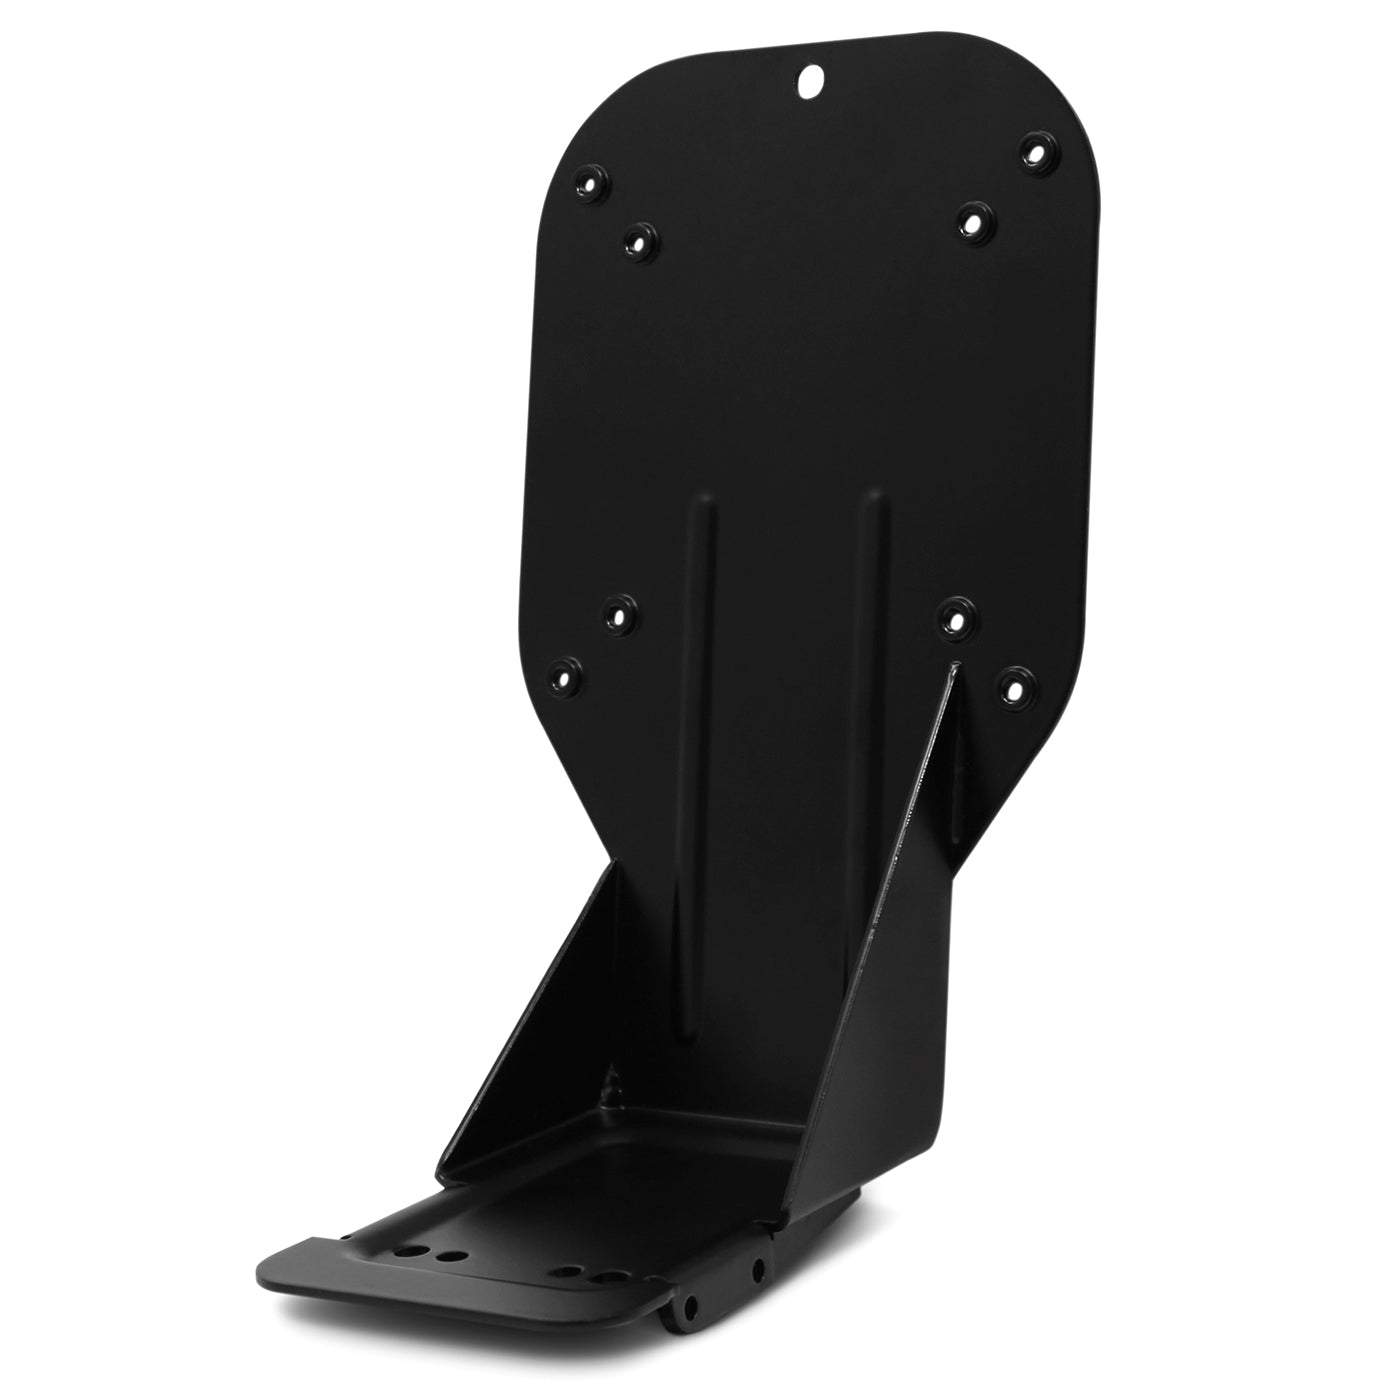 VESA Mount Adapter for HP All-in-One Computers